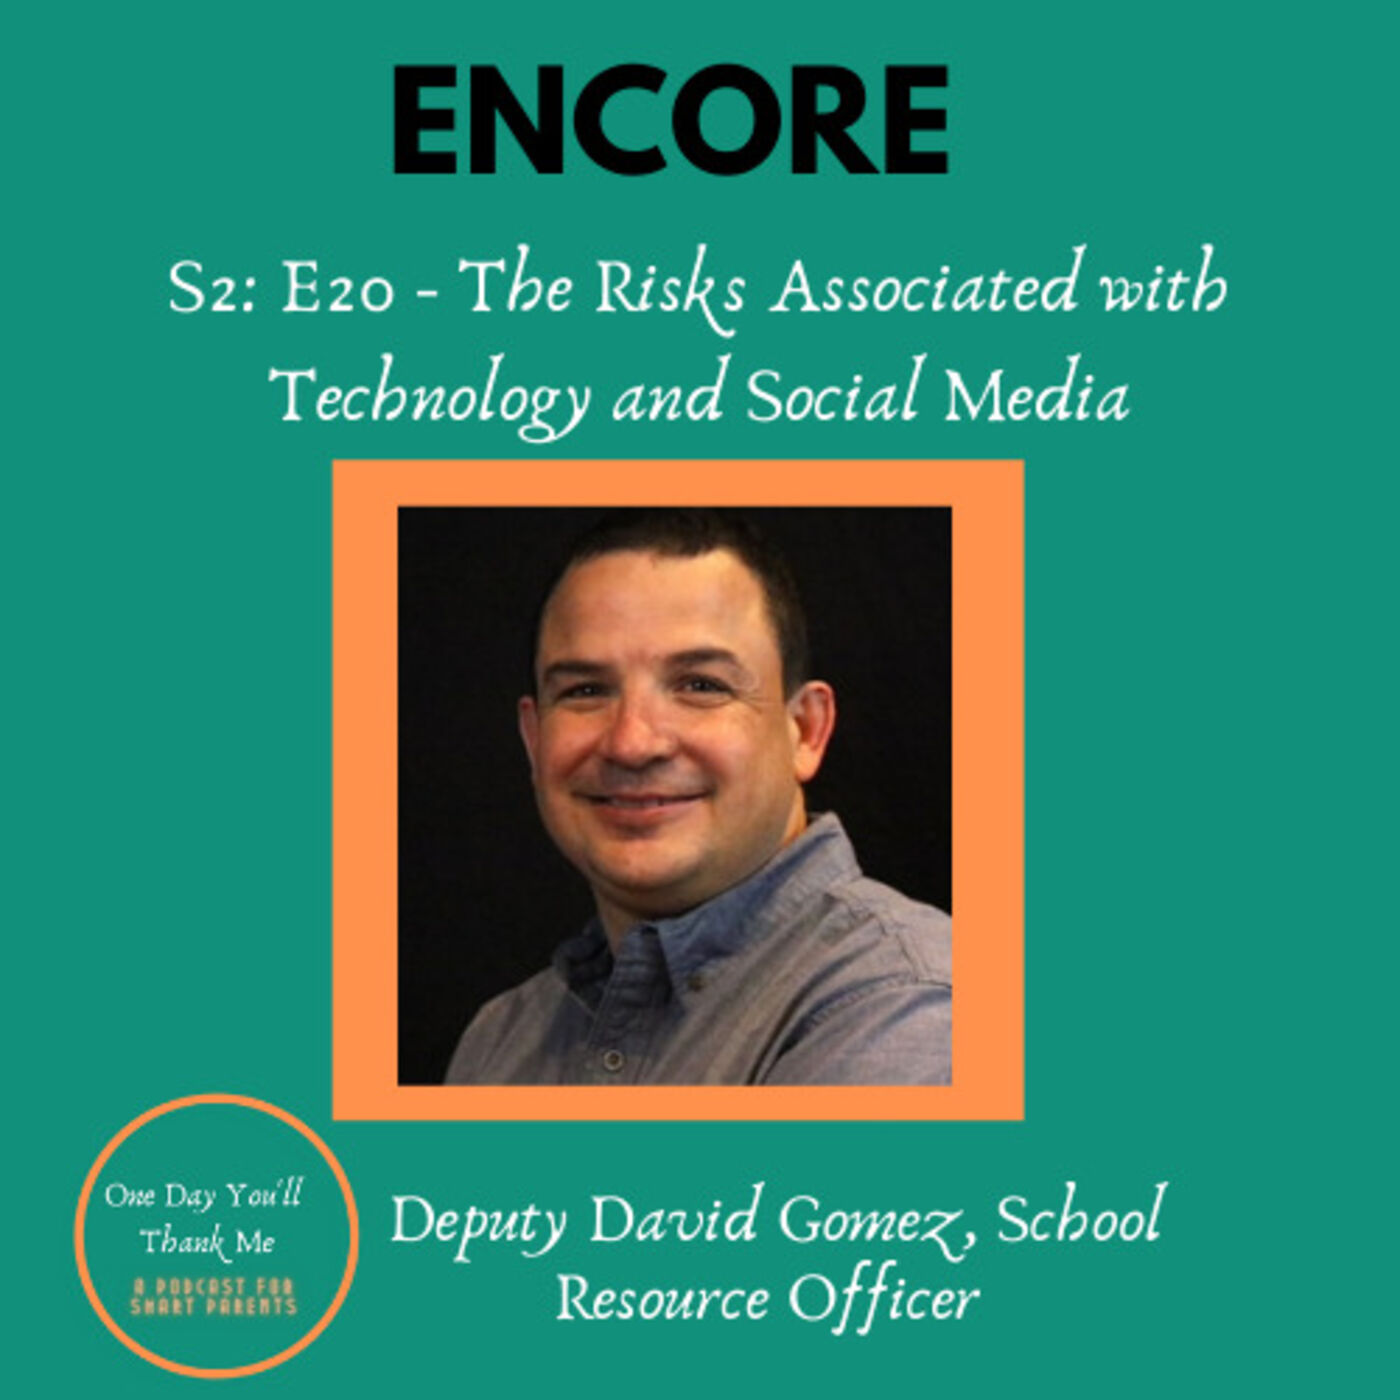 S3: E21 - ENCORE Officer Gomez, The Risks Associated with Technology and Social Media Use by Kids and Teens (original release date: 4/7/21)